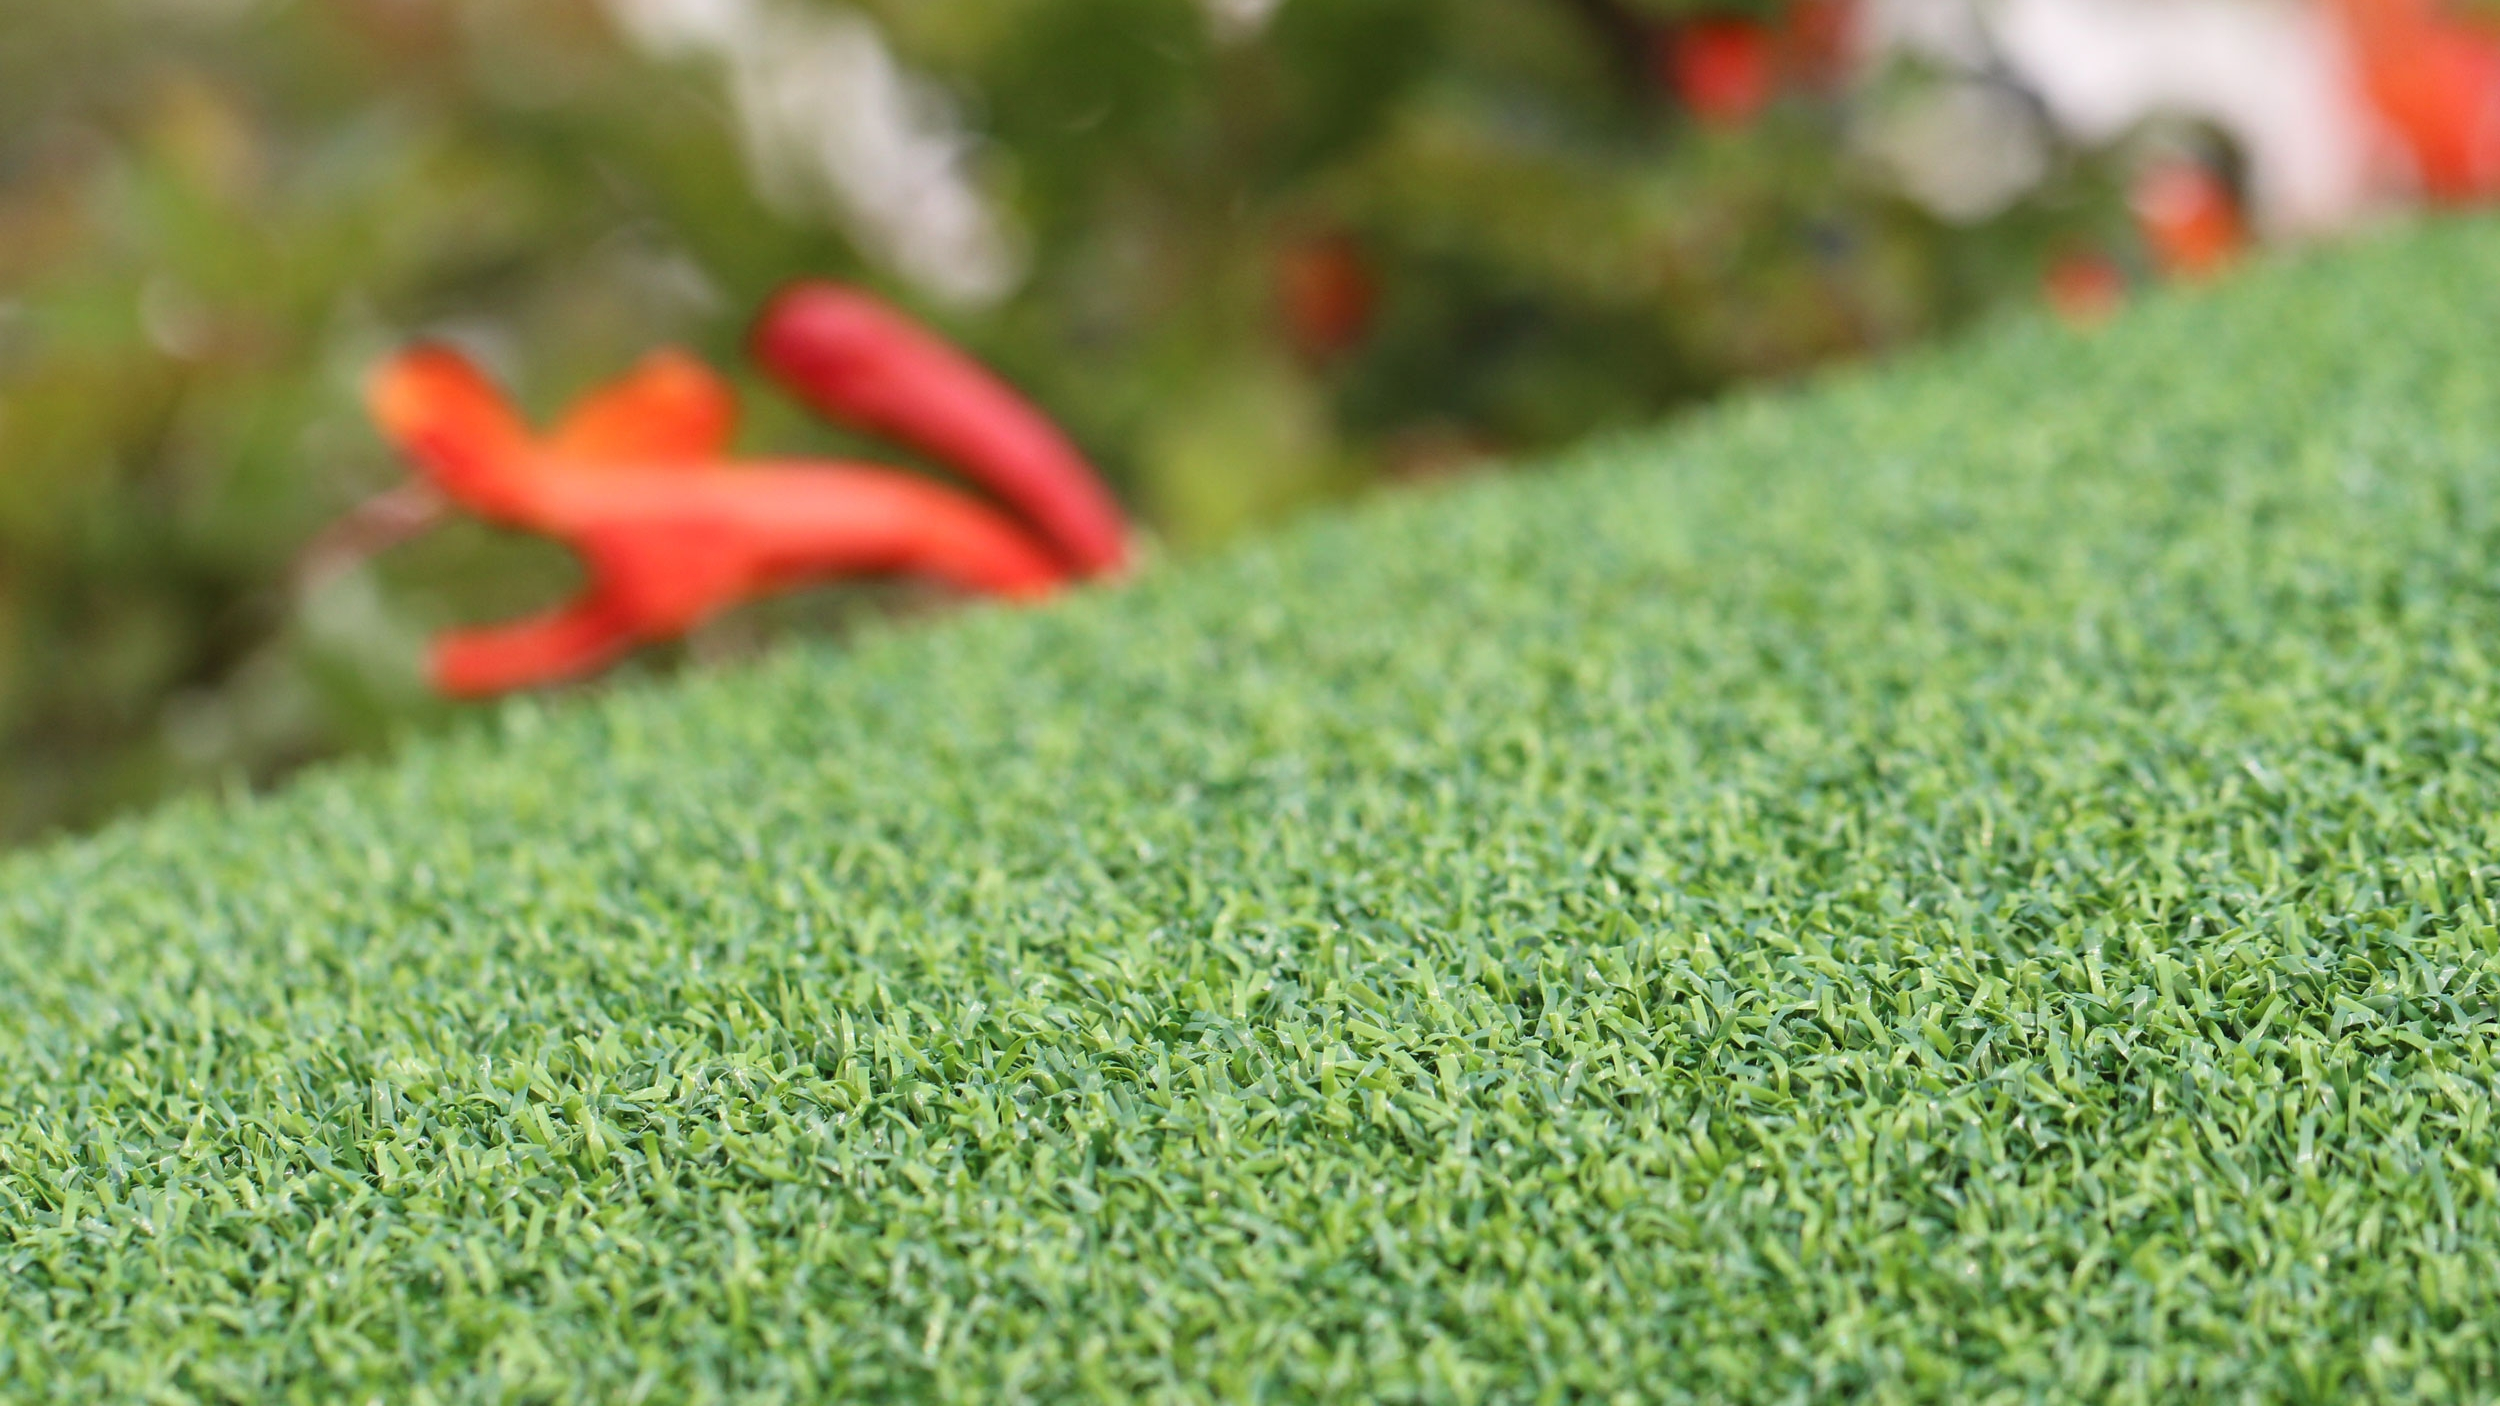 Putt-60 Bicolor Putting Green Grass - Global Syn-Turf